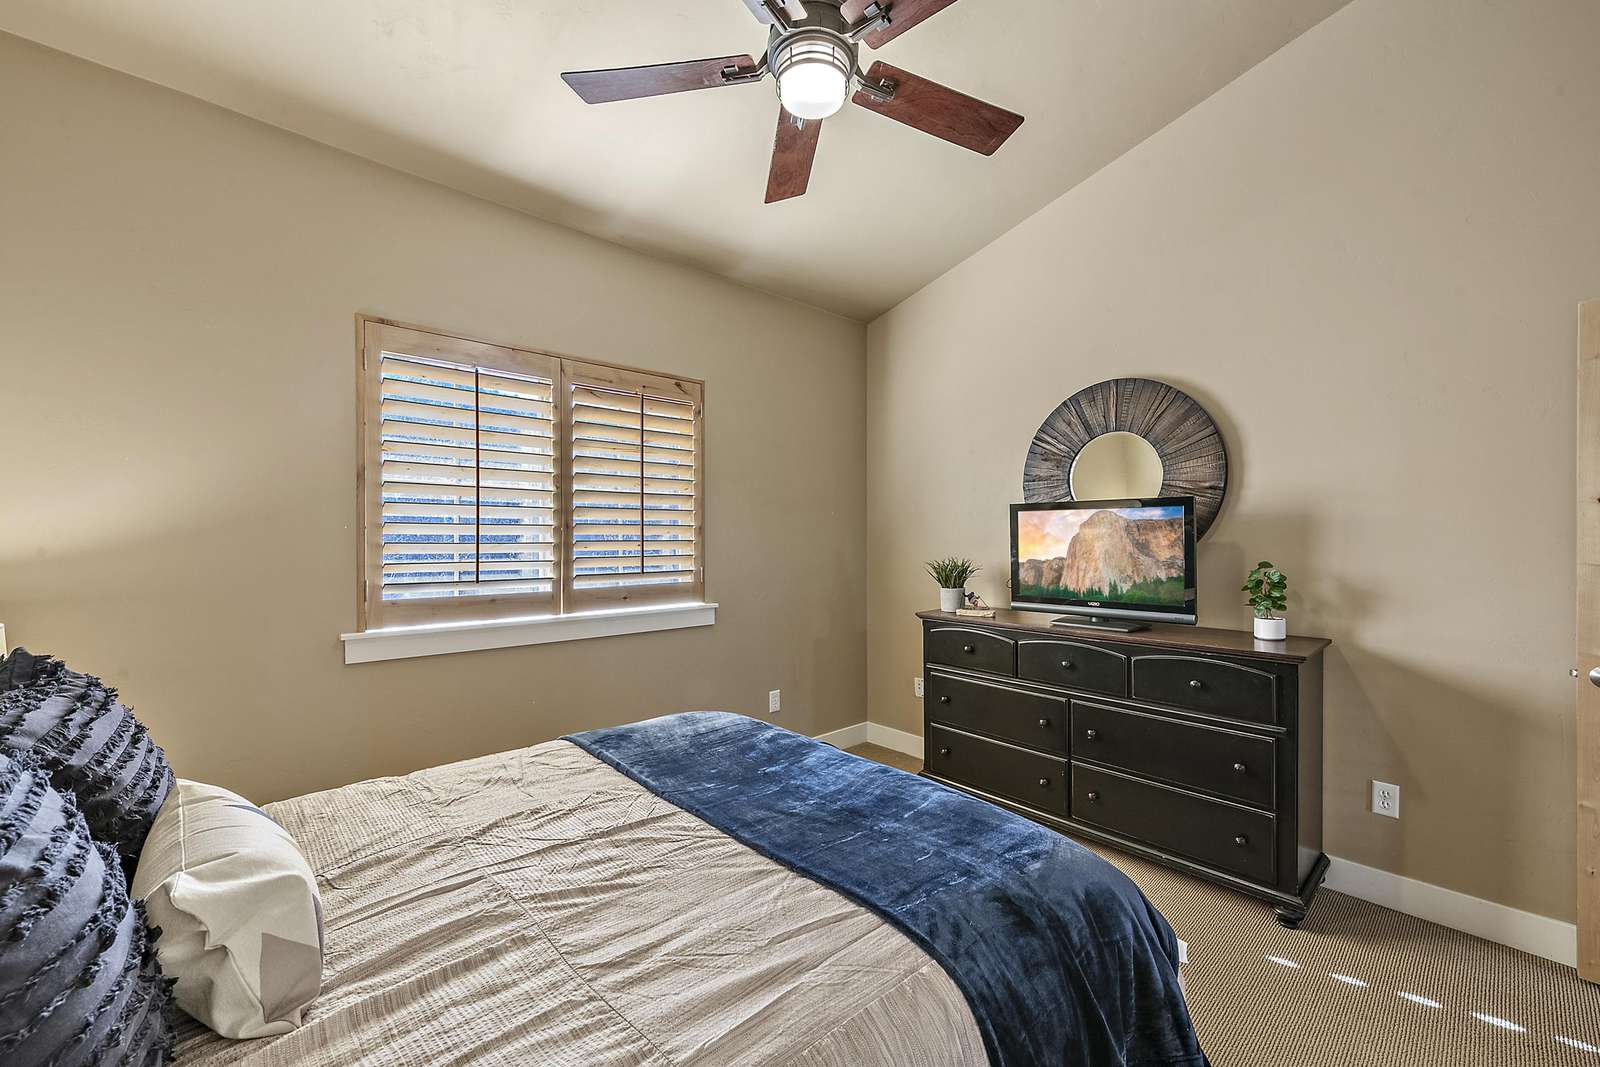 Fan and windows for your comfort